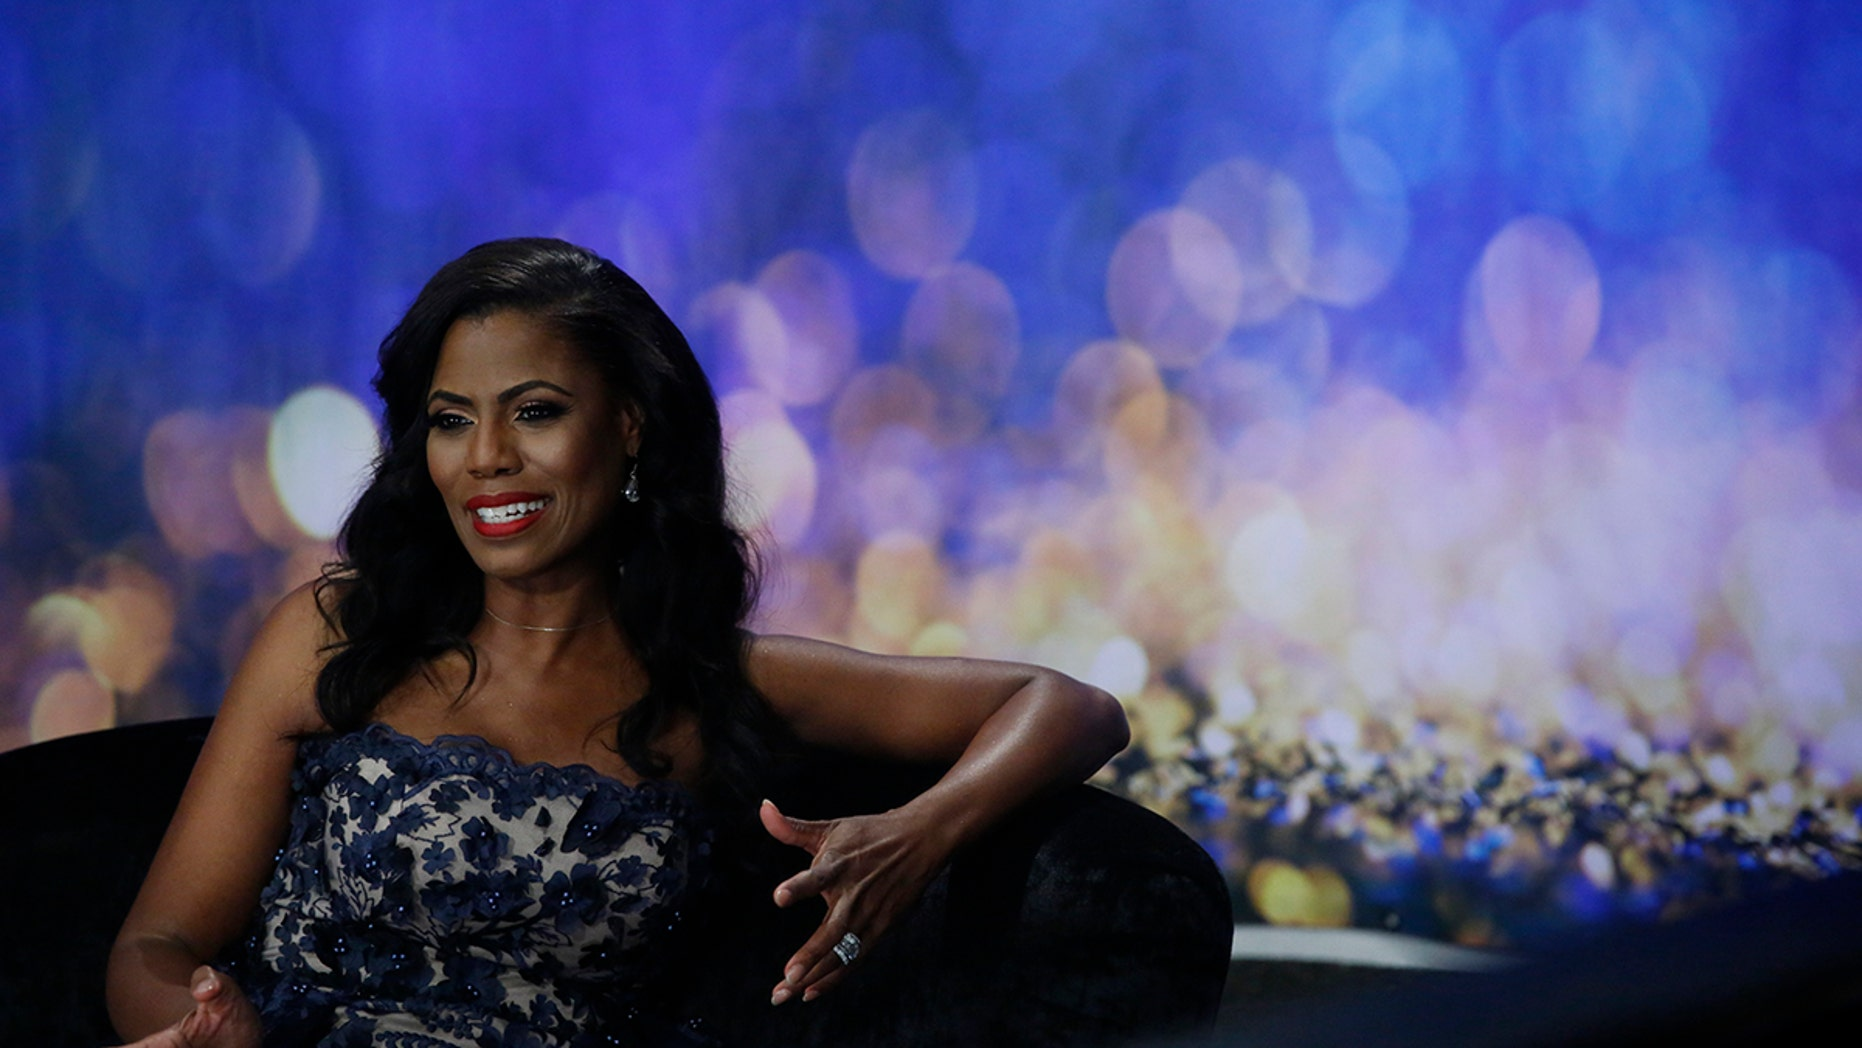 BIG BROTHER: CELEBRITY EDITION  -- Omarosa on the first-ever celebrity edition of BIG BROTHER in the U.S., will debut with a three-night premiere event, Wednesday, Feb. 7 (8:00-9:01 PM, ET/PT), Thursday, Feb. 8 (8:00-9:00 PM, ET/PT) and a two-hour live show on Friday, Feb. 9 (8:00-10:00 PM, ET/PT) on the CBS Television Network    Photo: Cliff Lipson/CBS ©2018 CBS Broadcasting, Inc. All Rights Reserved